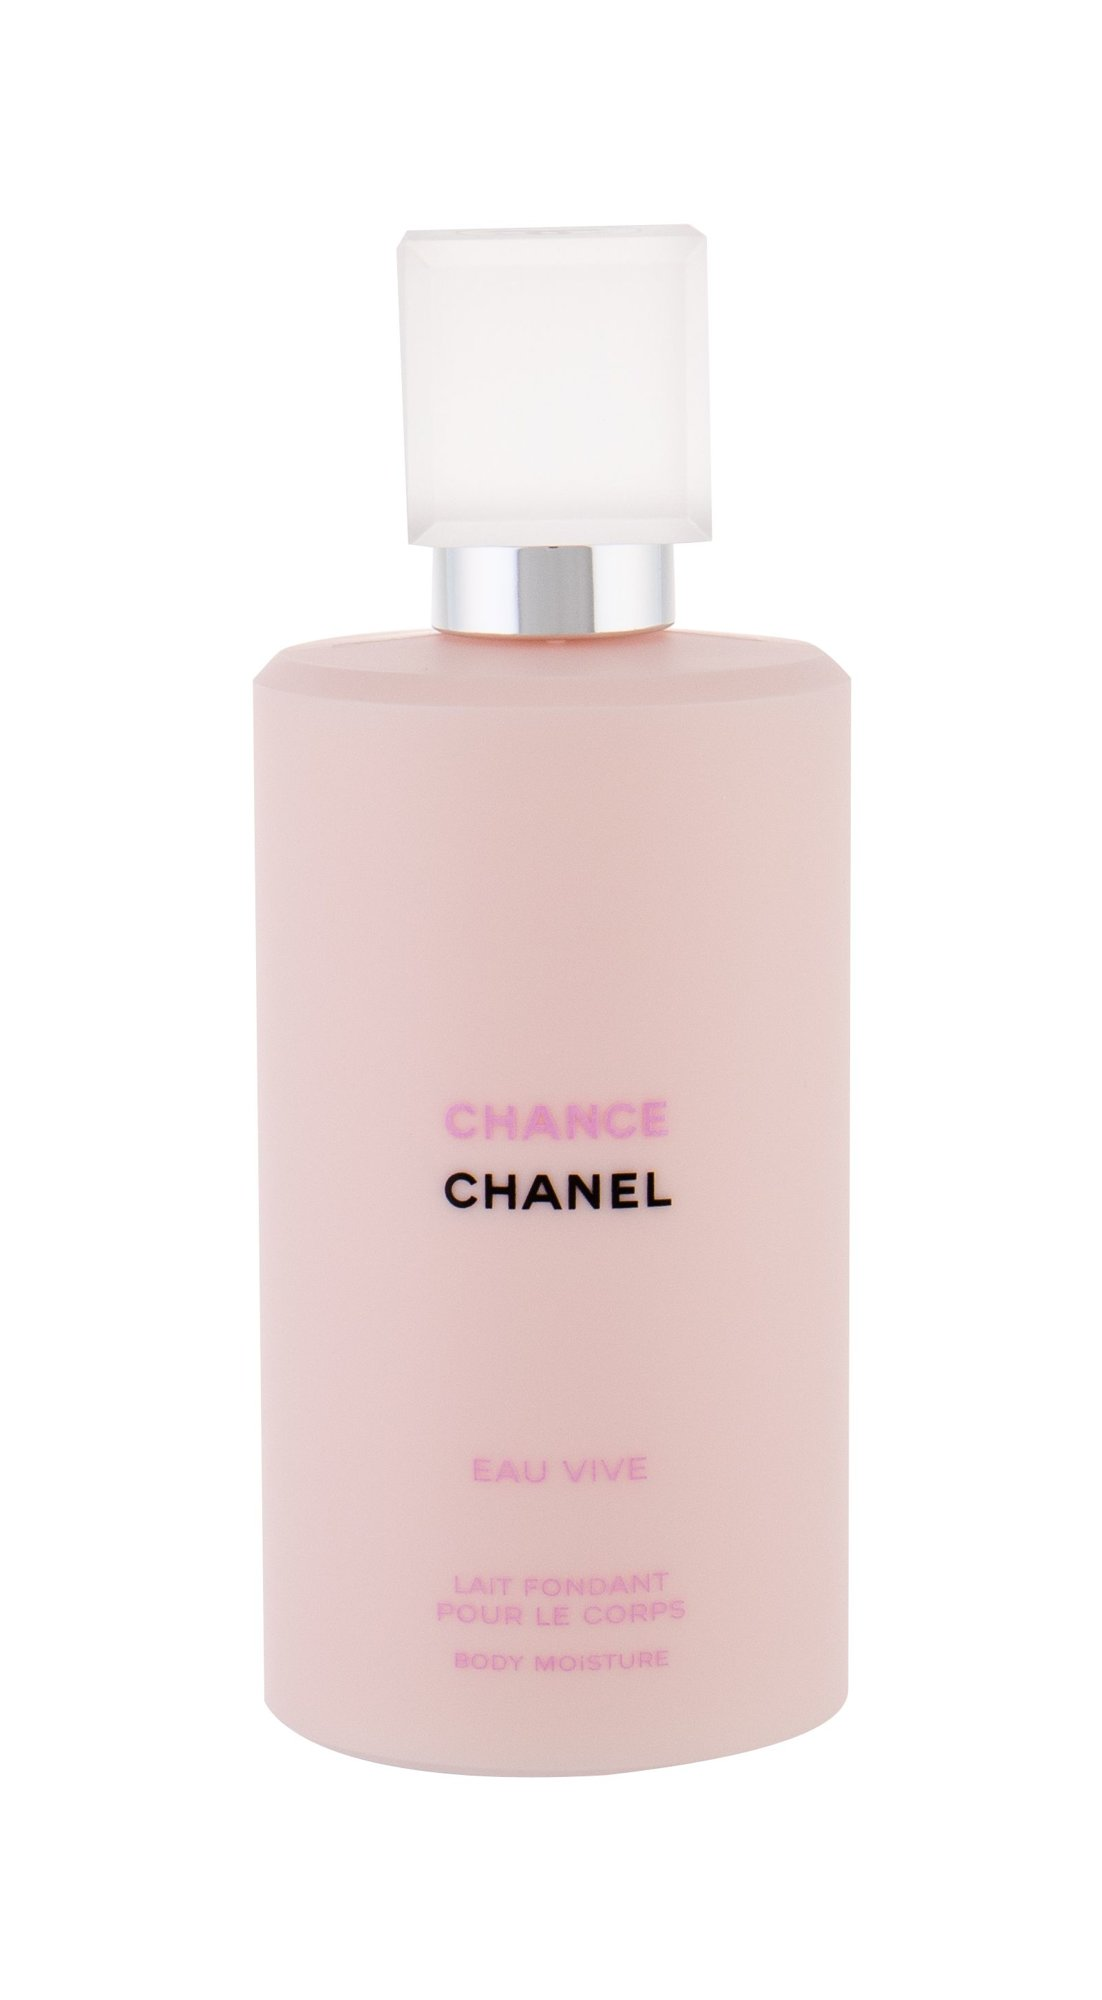 Chanel Chance Body Lotion 200ml